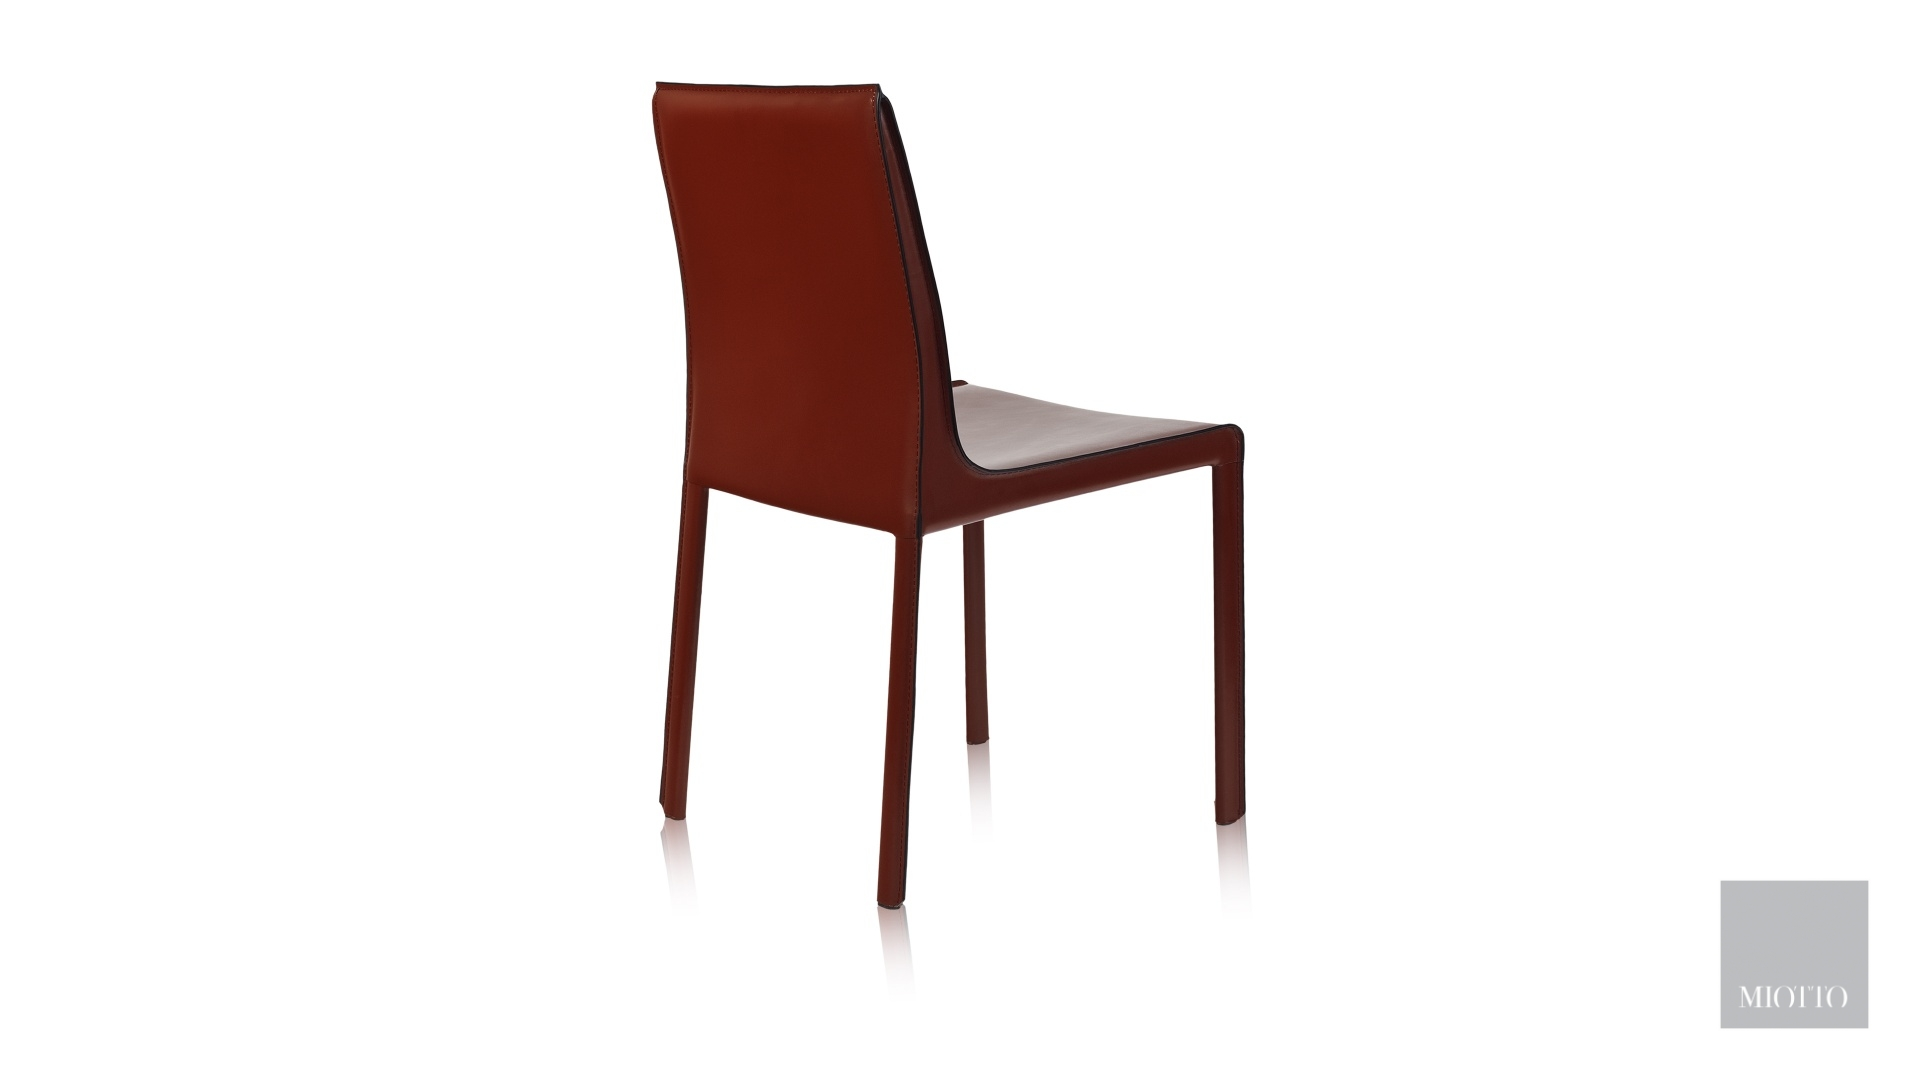 miotto_Ardini dining chair burgundy miotto furniture back t